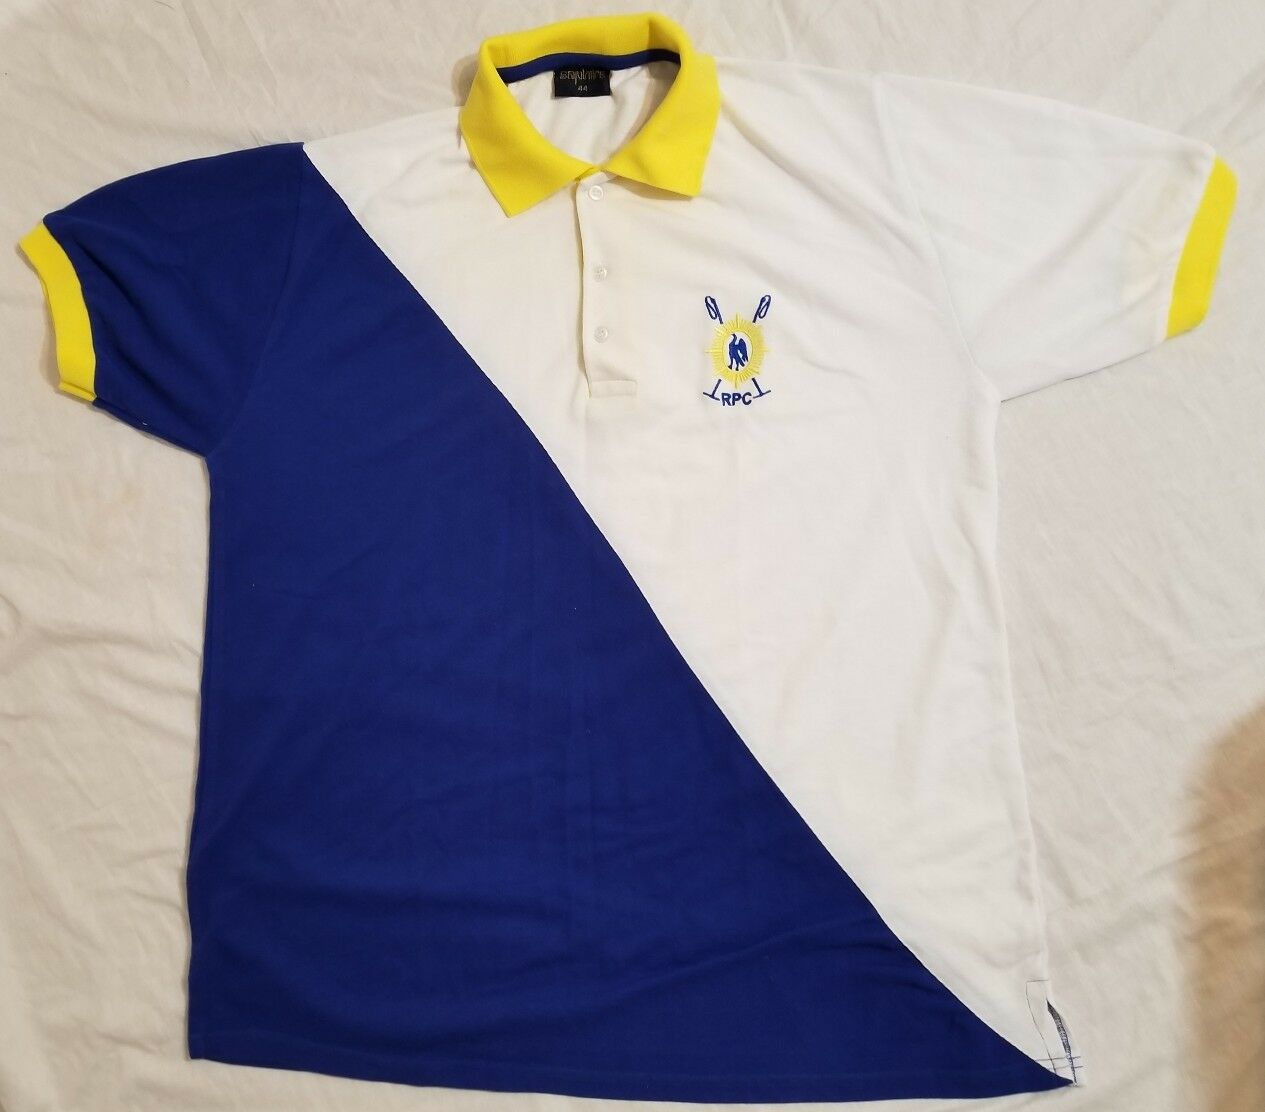 Rajasthan polo club Shirt Size 44 XL